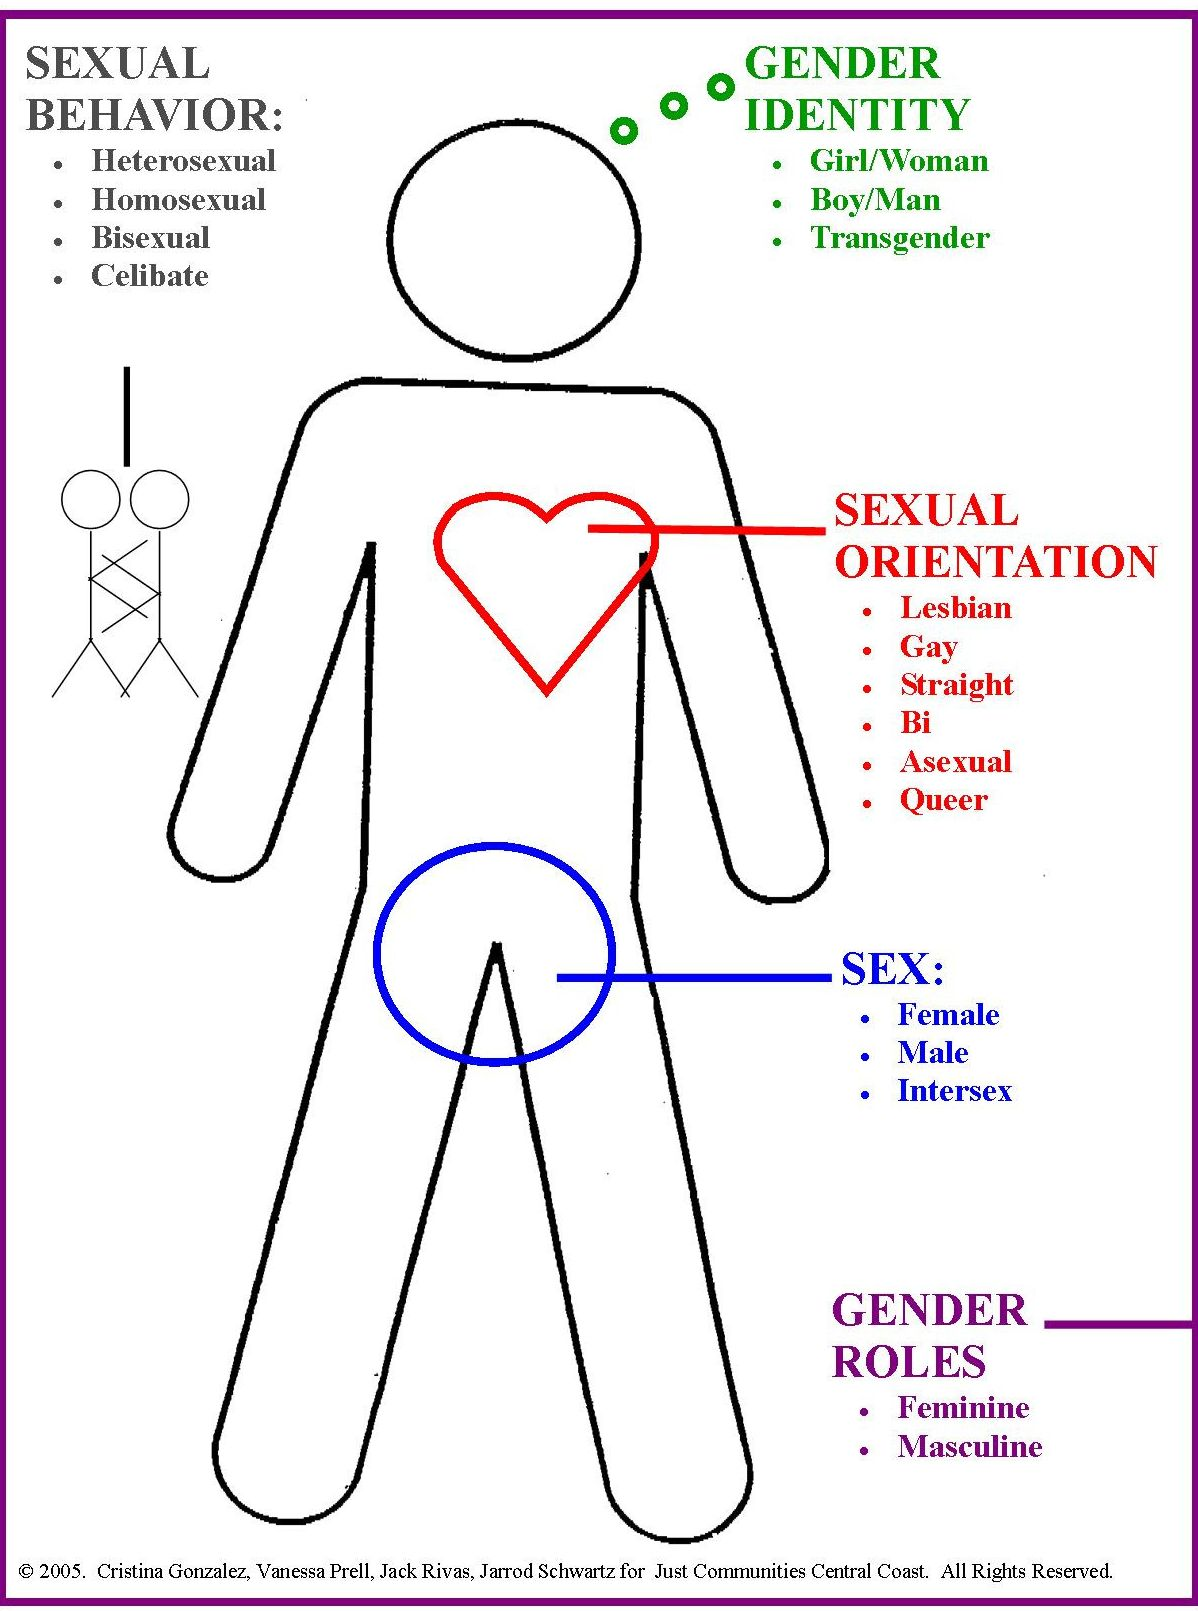 comparing the differences between sex and gender In summary, sex refers to the biological differences between men and women, while gender refers to psychological differences, including how masculine or feminine you are.